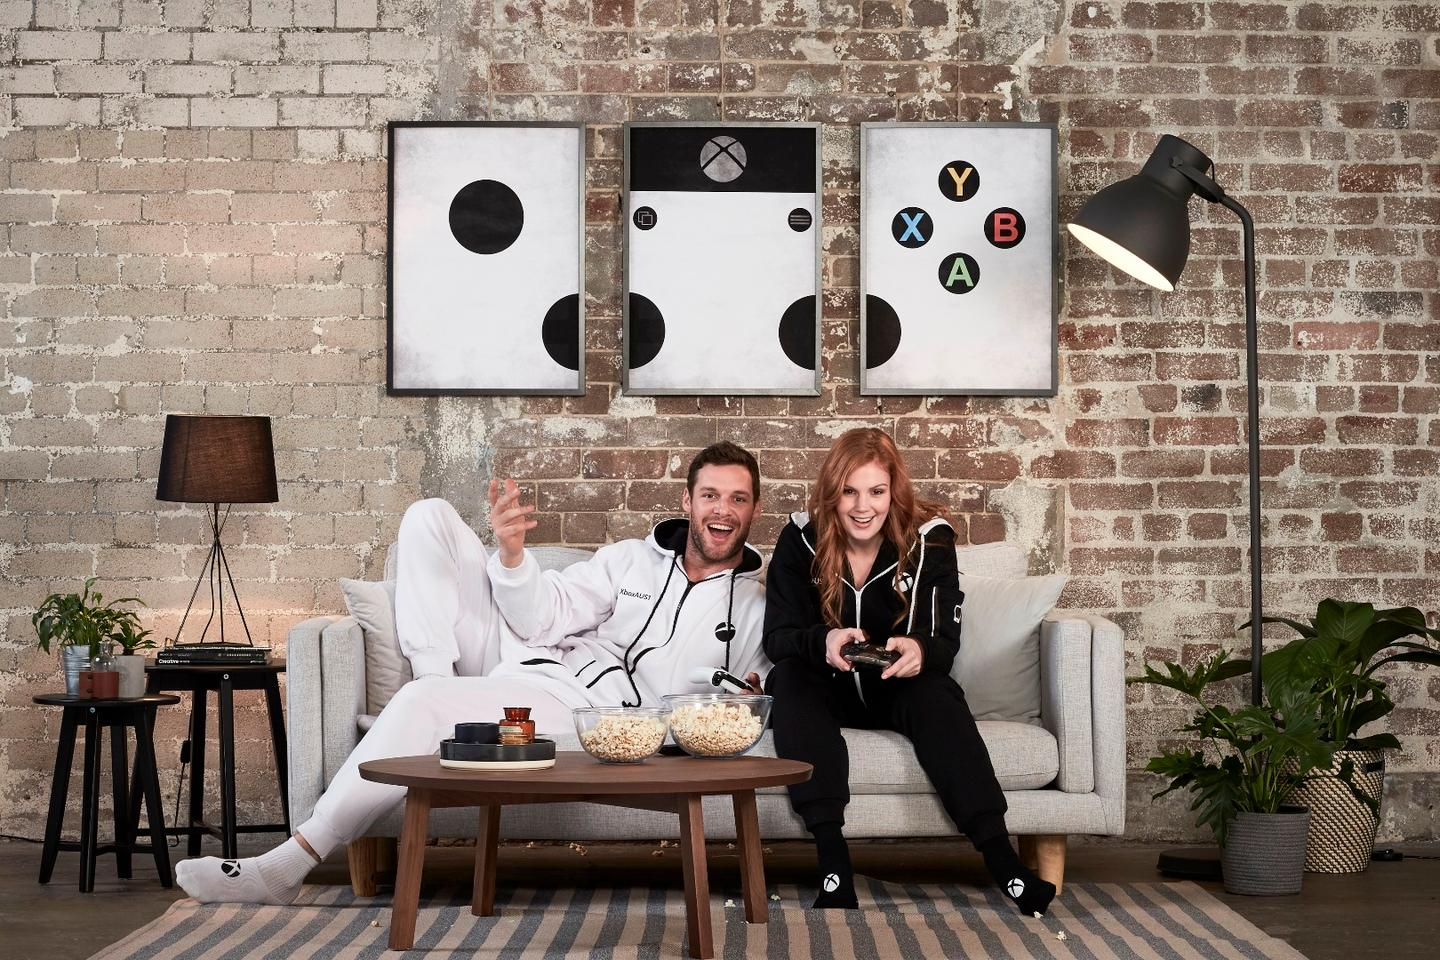 TheXbox Onesie has been aimed directly at gamers and couch potatoes